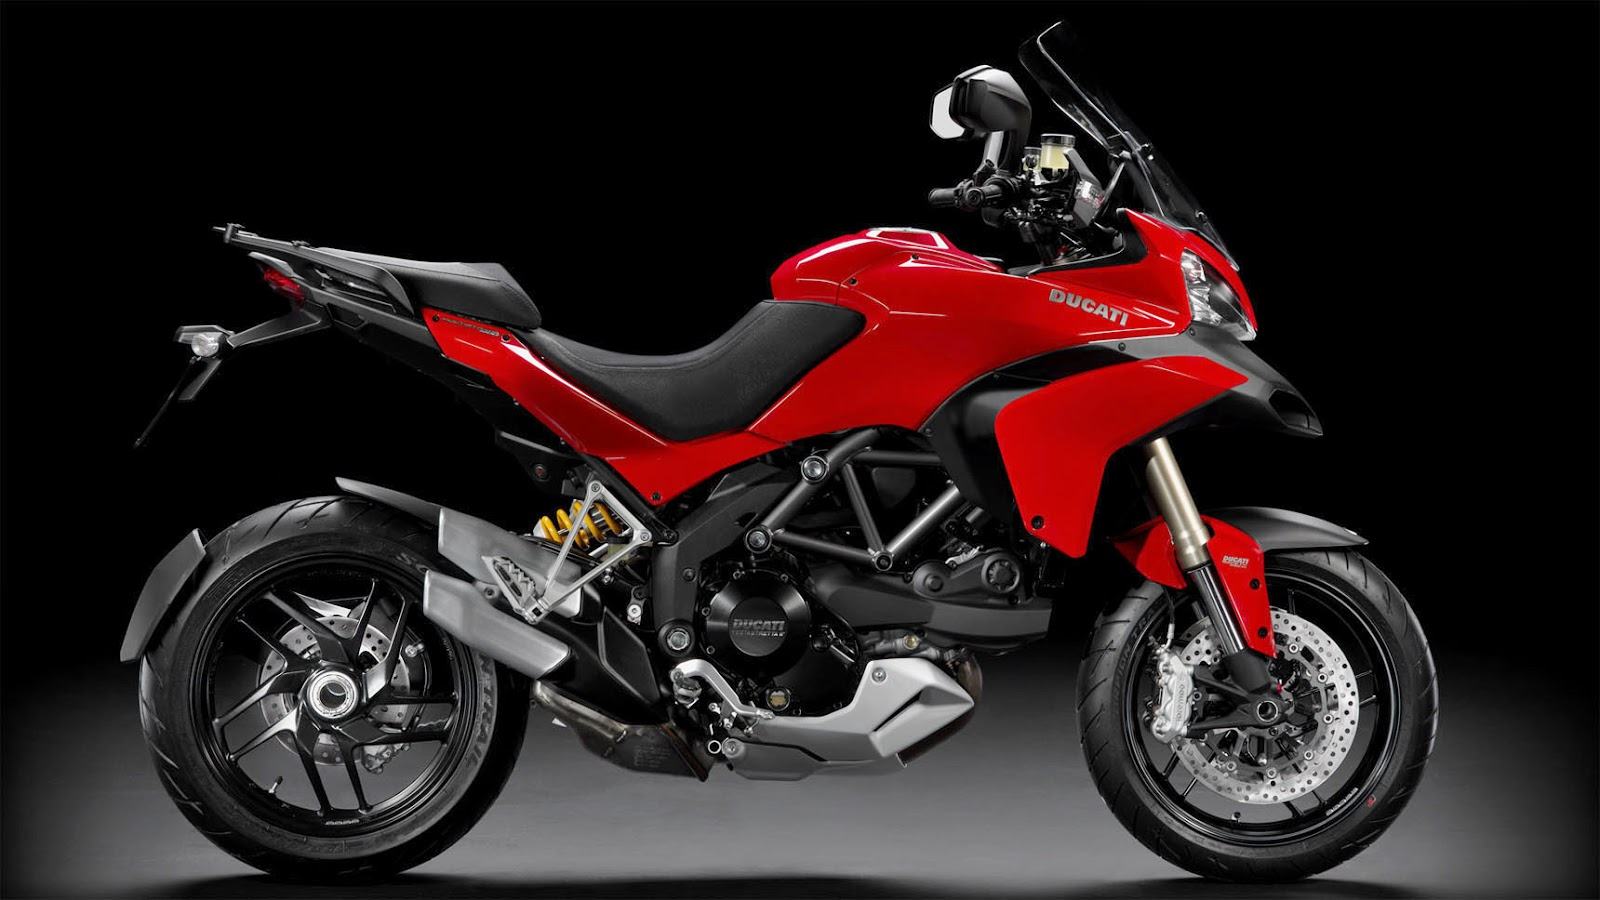 DUCATI MULTISTRADA 1200 ABS 2014 Repair Workshop Manual